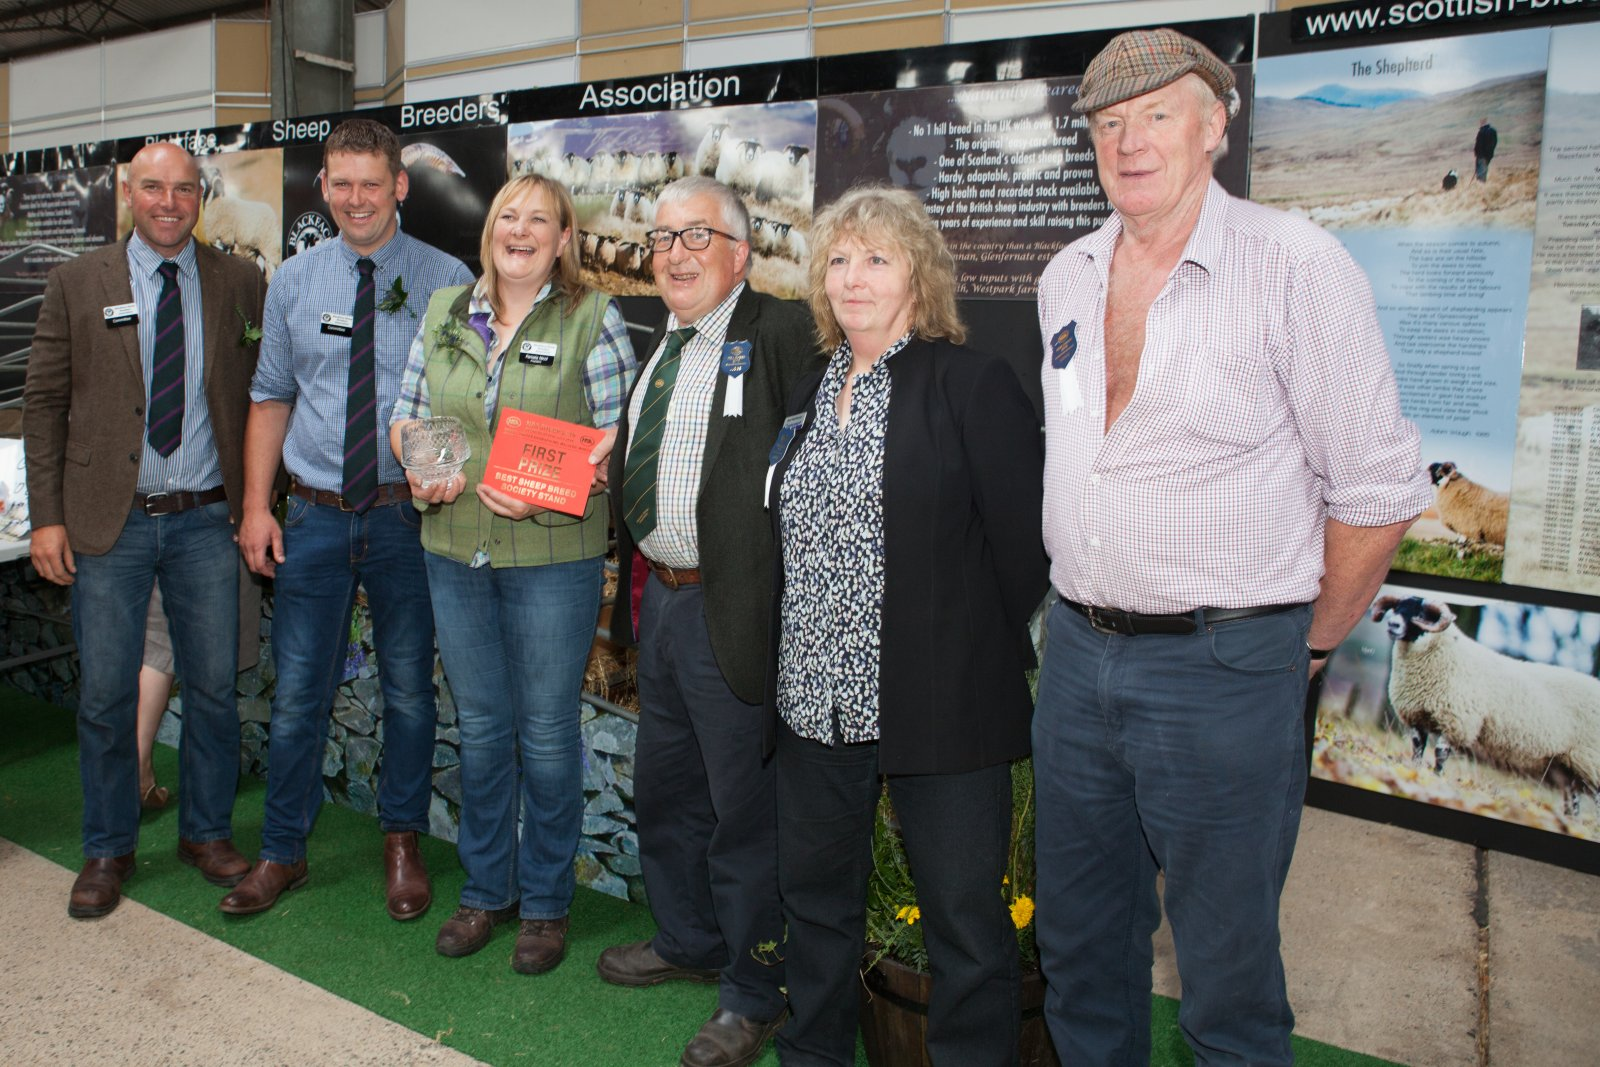 Best Breed Society Stand winners, Blackface Sheep Breeders Association